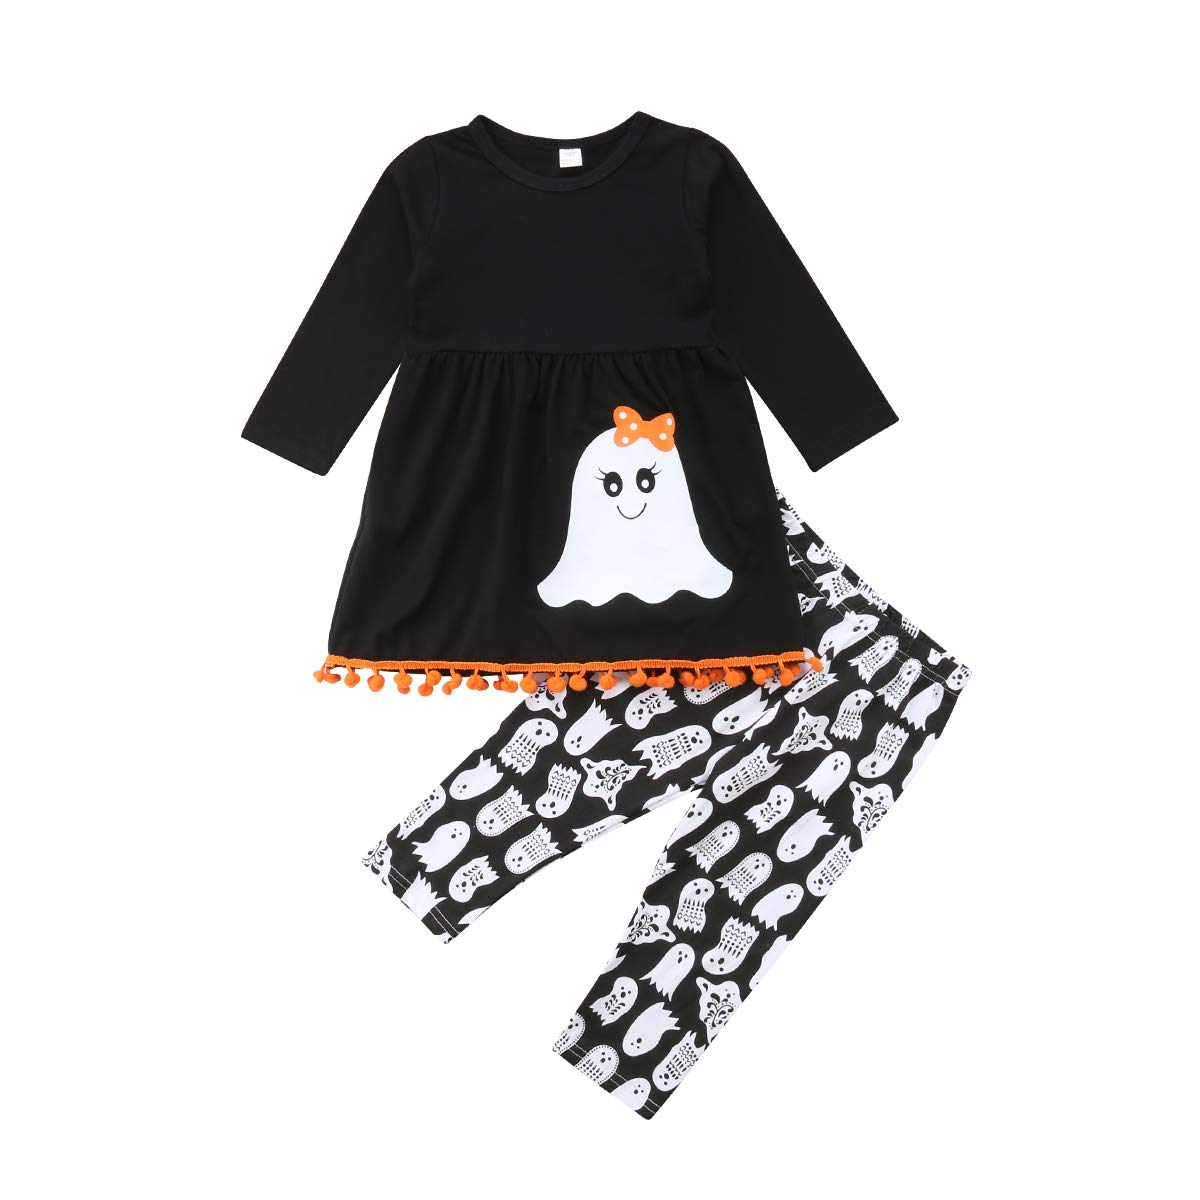 Halloween Toddler Kids Girls Cute Ghost Tassels T-Shirt Tops + Long Leggings Pants 2Pcs Outfits Set Listogether